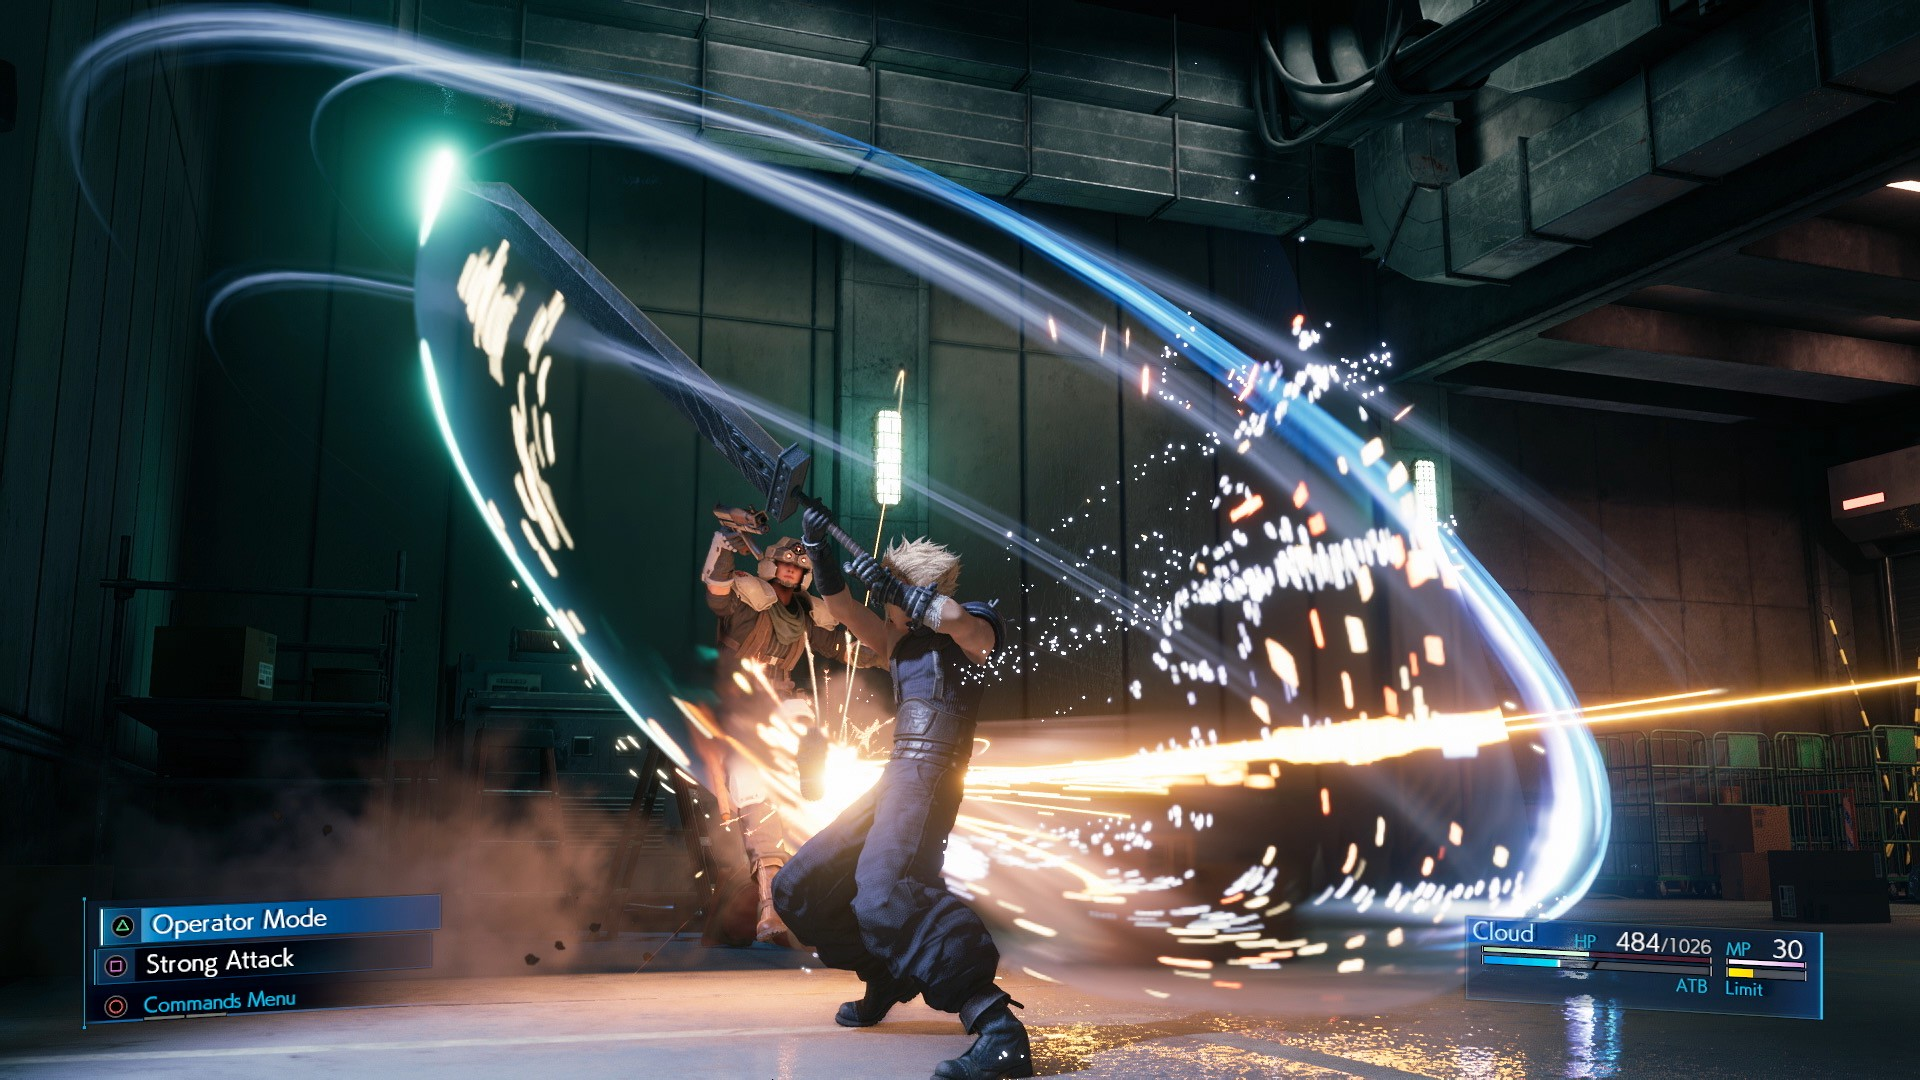 Here's a bunch of new Final Fantasy VII Remake Screenshots and Renders